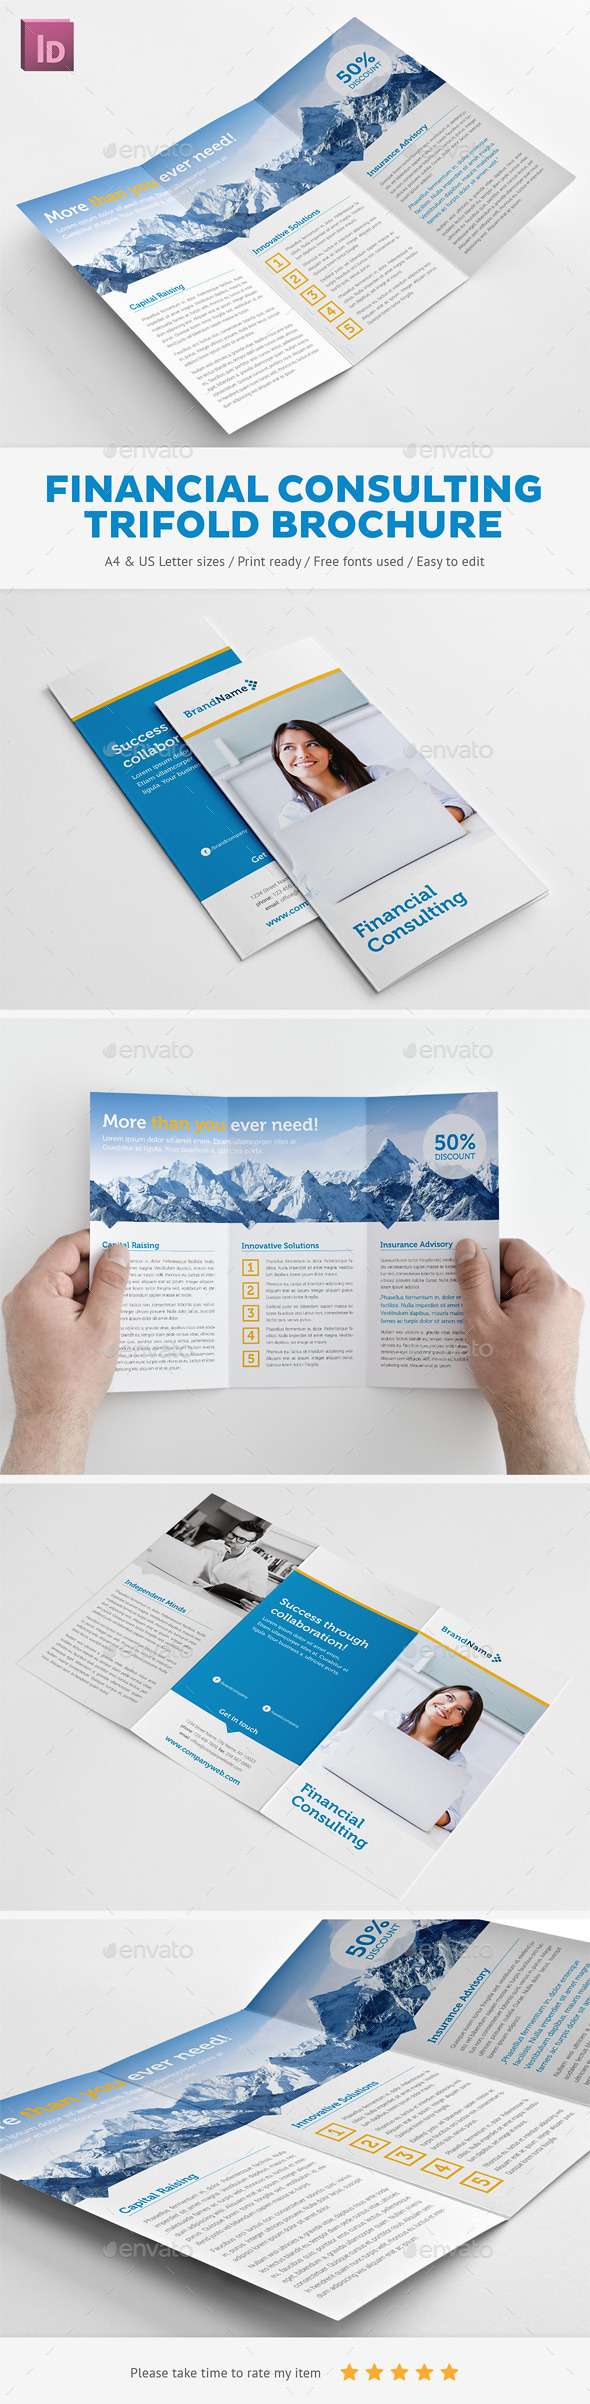 GraphicRiver Financial Consulting Trifold Brochure 10192932